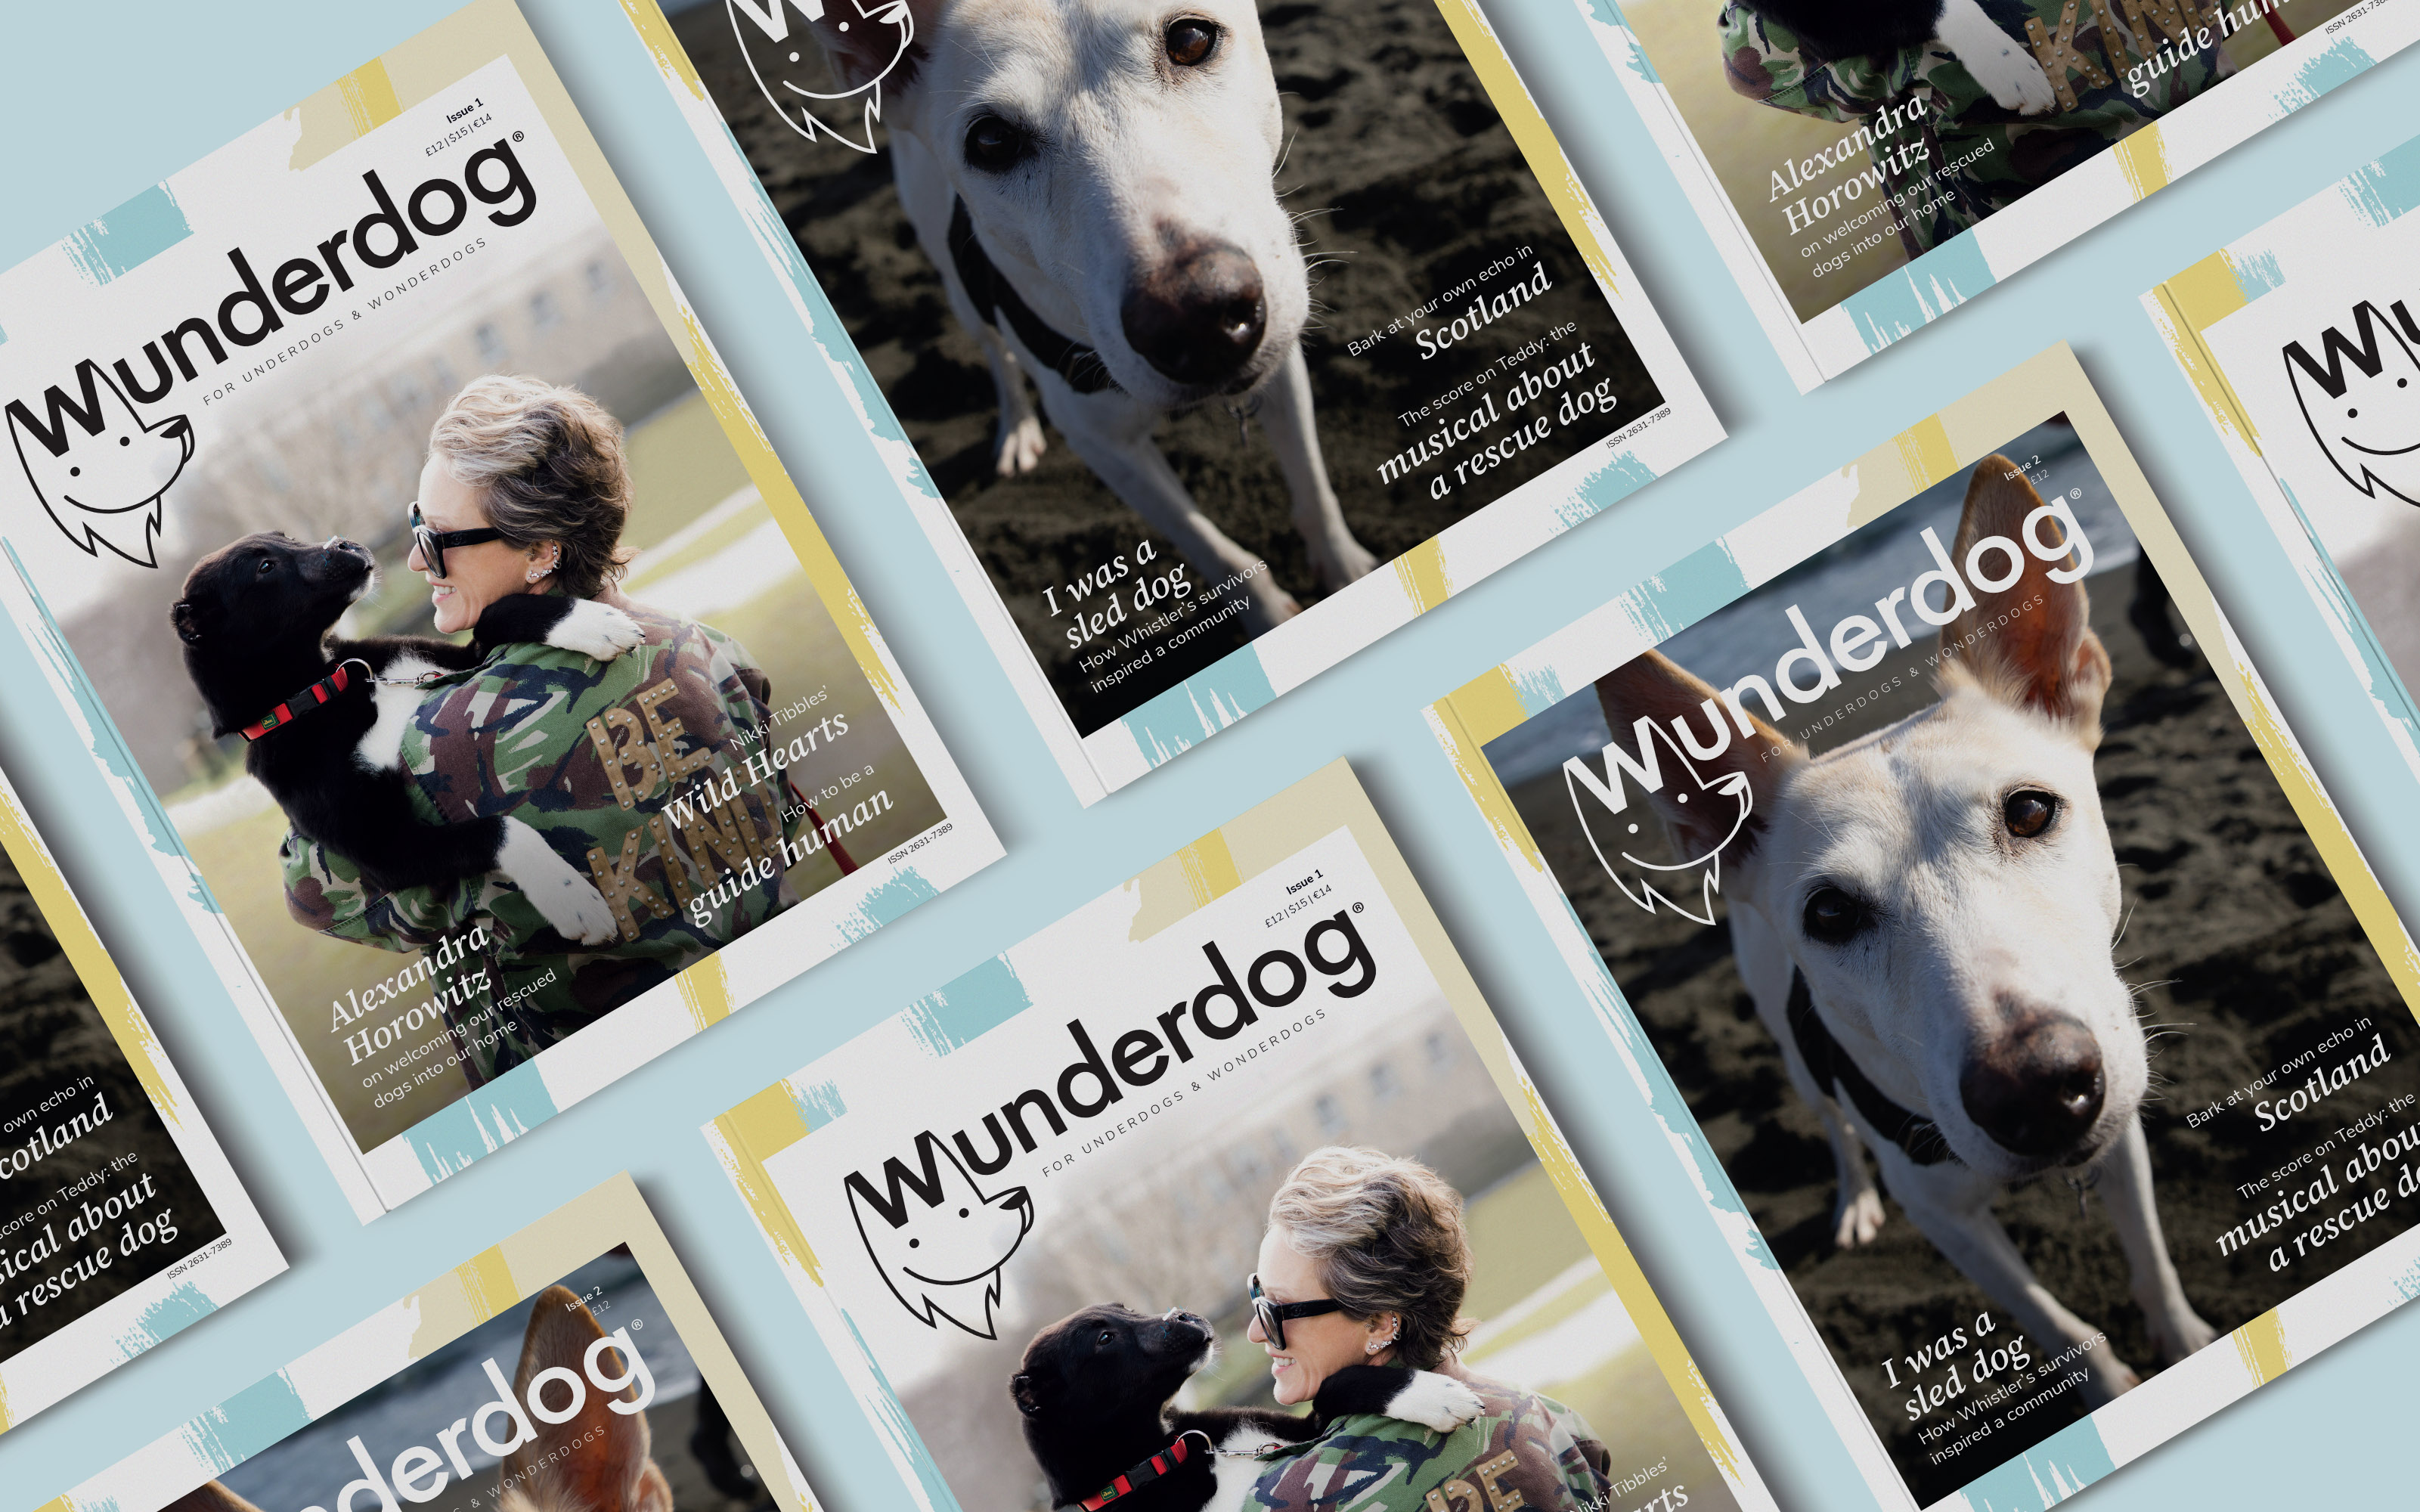 designing-wunderdog-the-feel-good-magazine-for-rescue-dog-lovers-featured